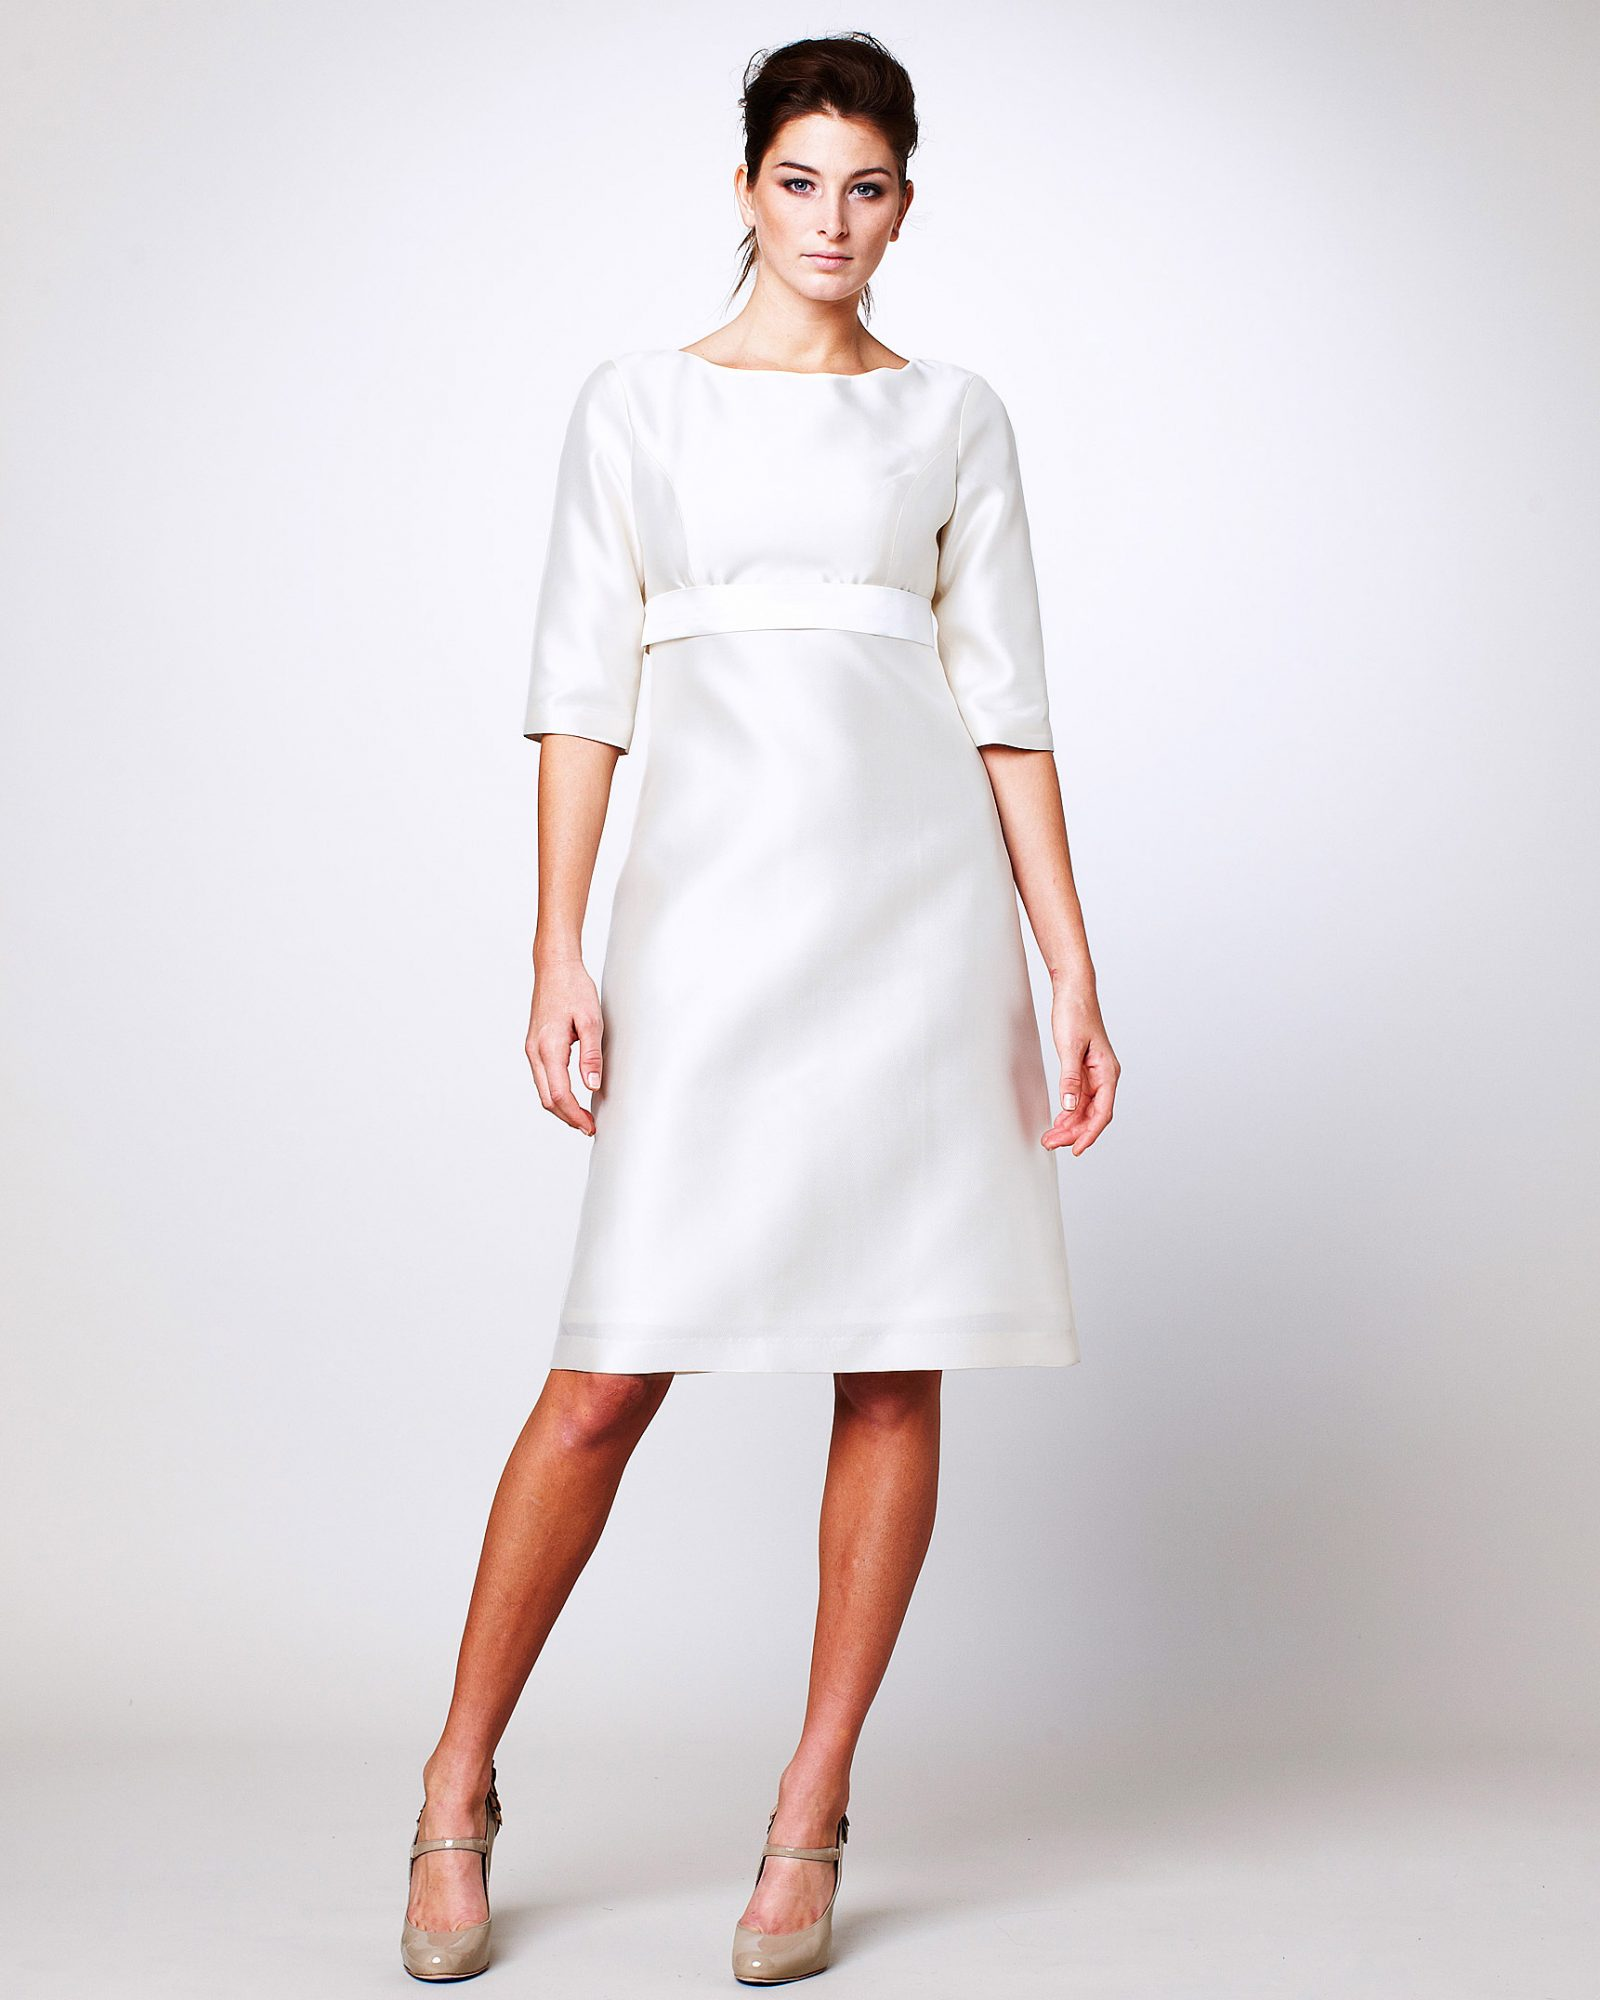 iconic-dresses-simple-silhouettes.jpg